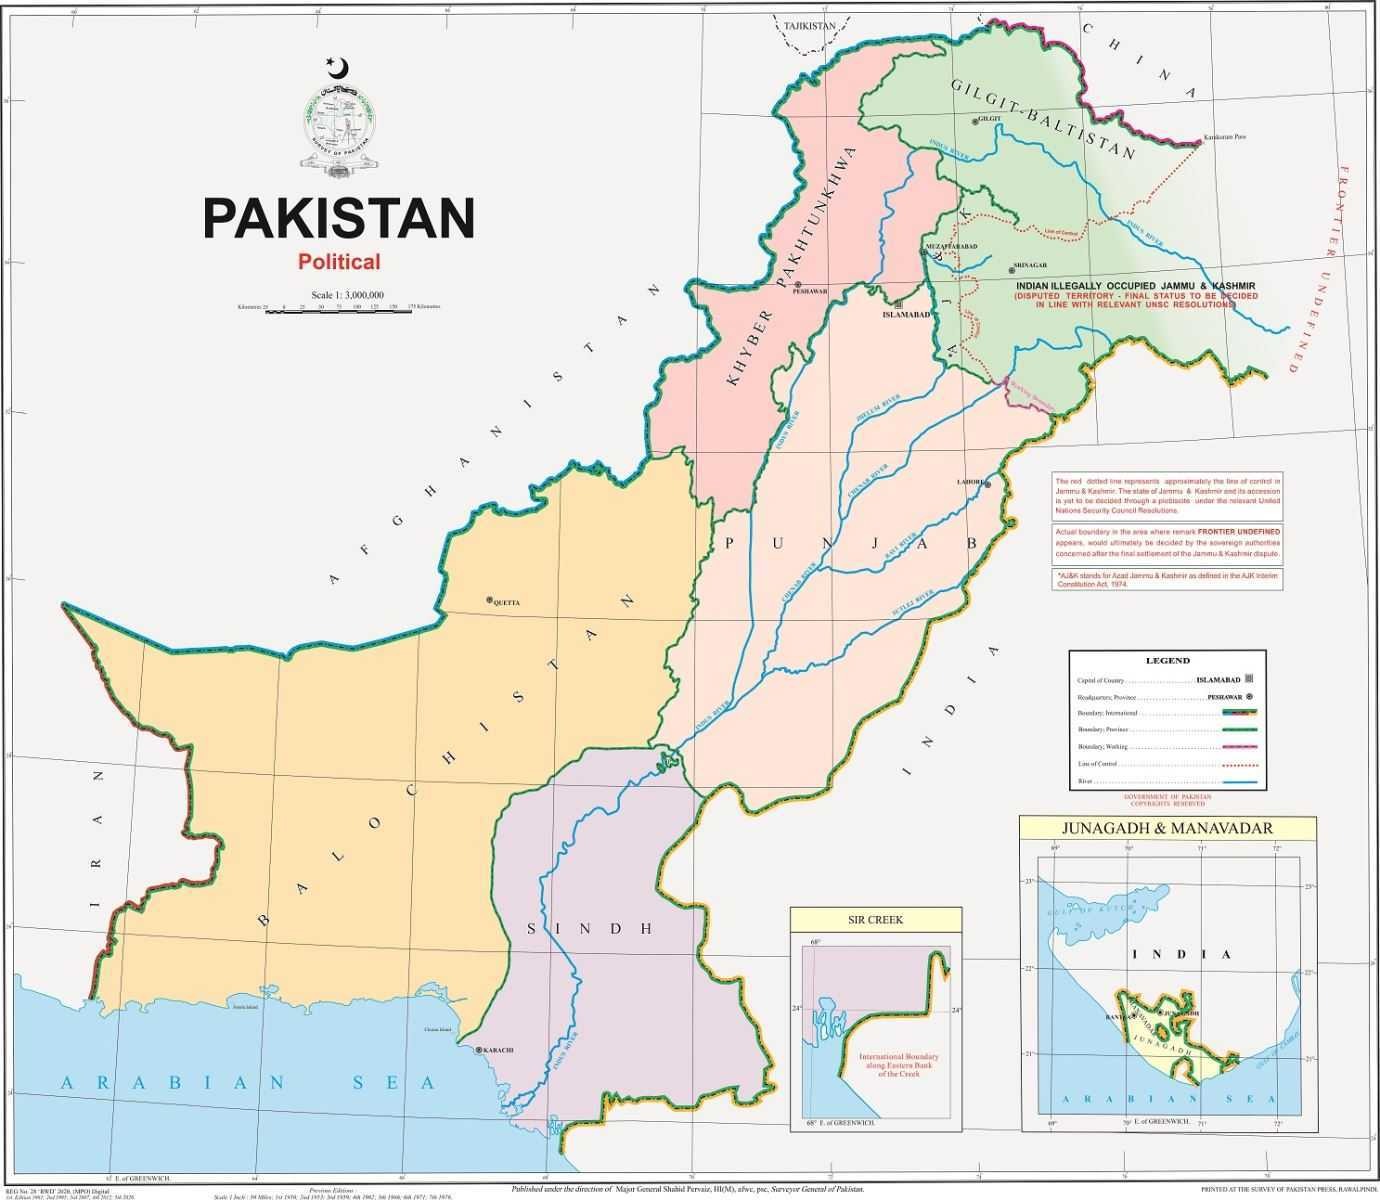 political_map_pakistan